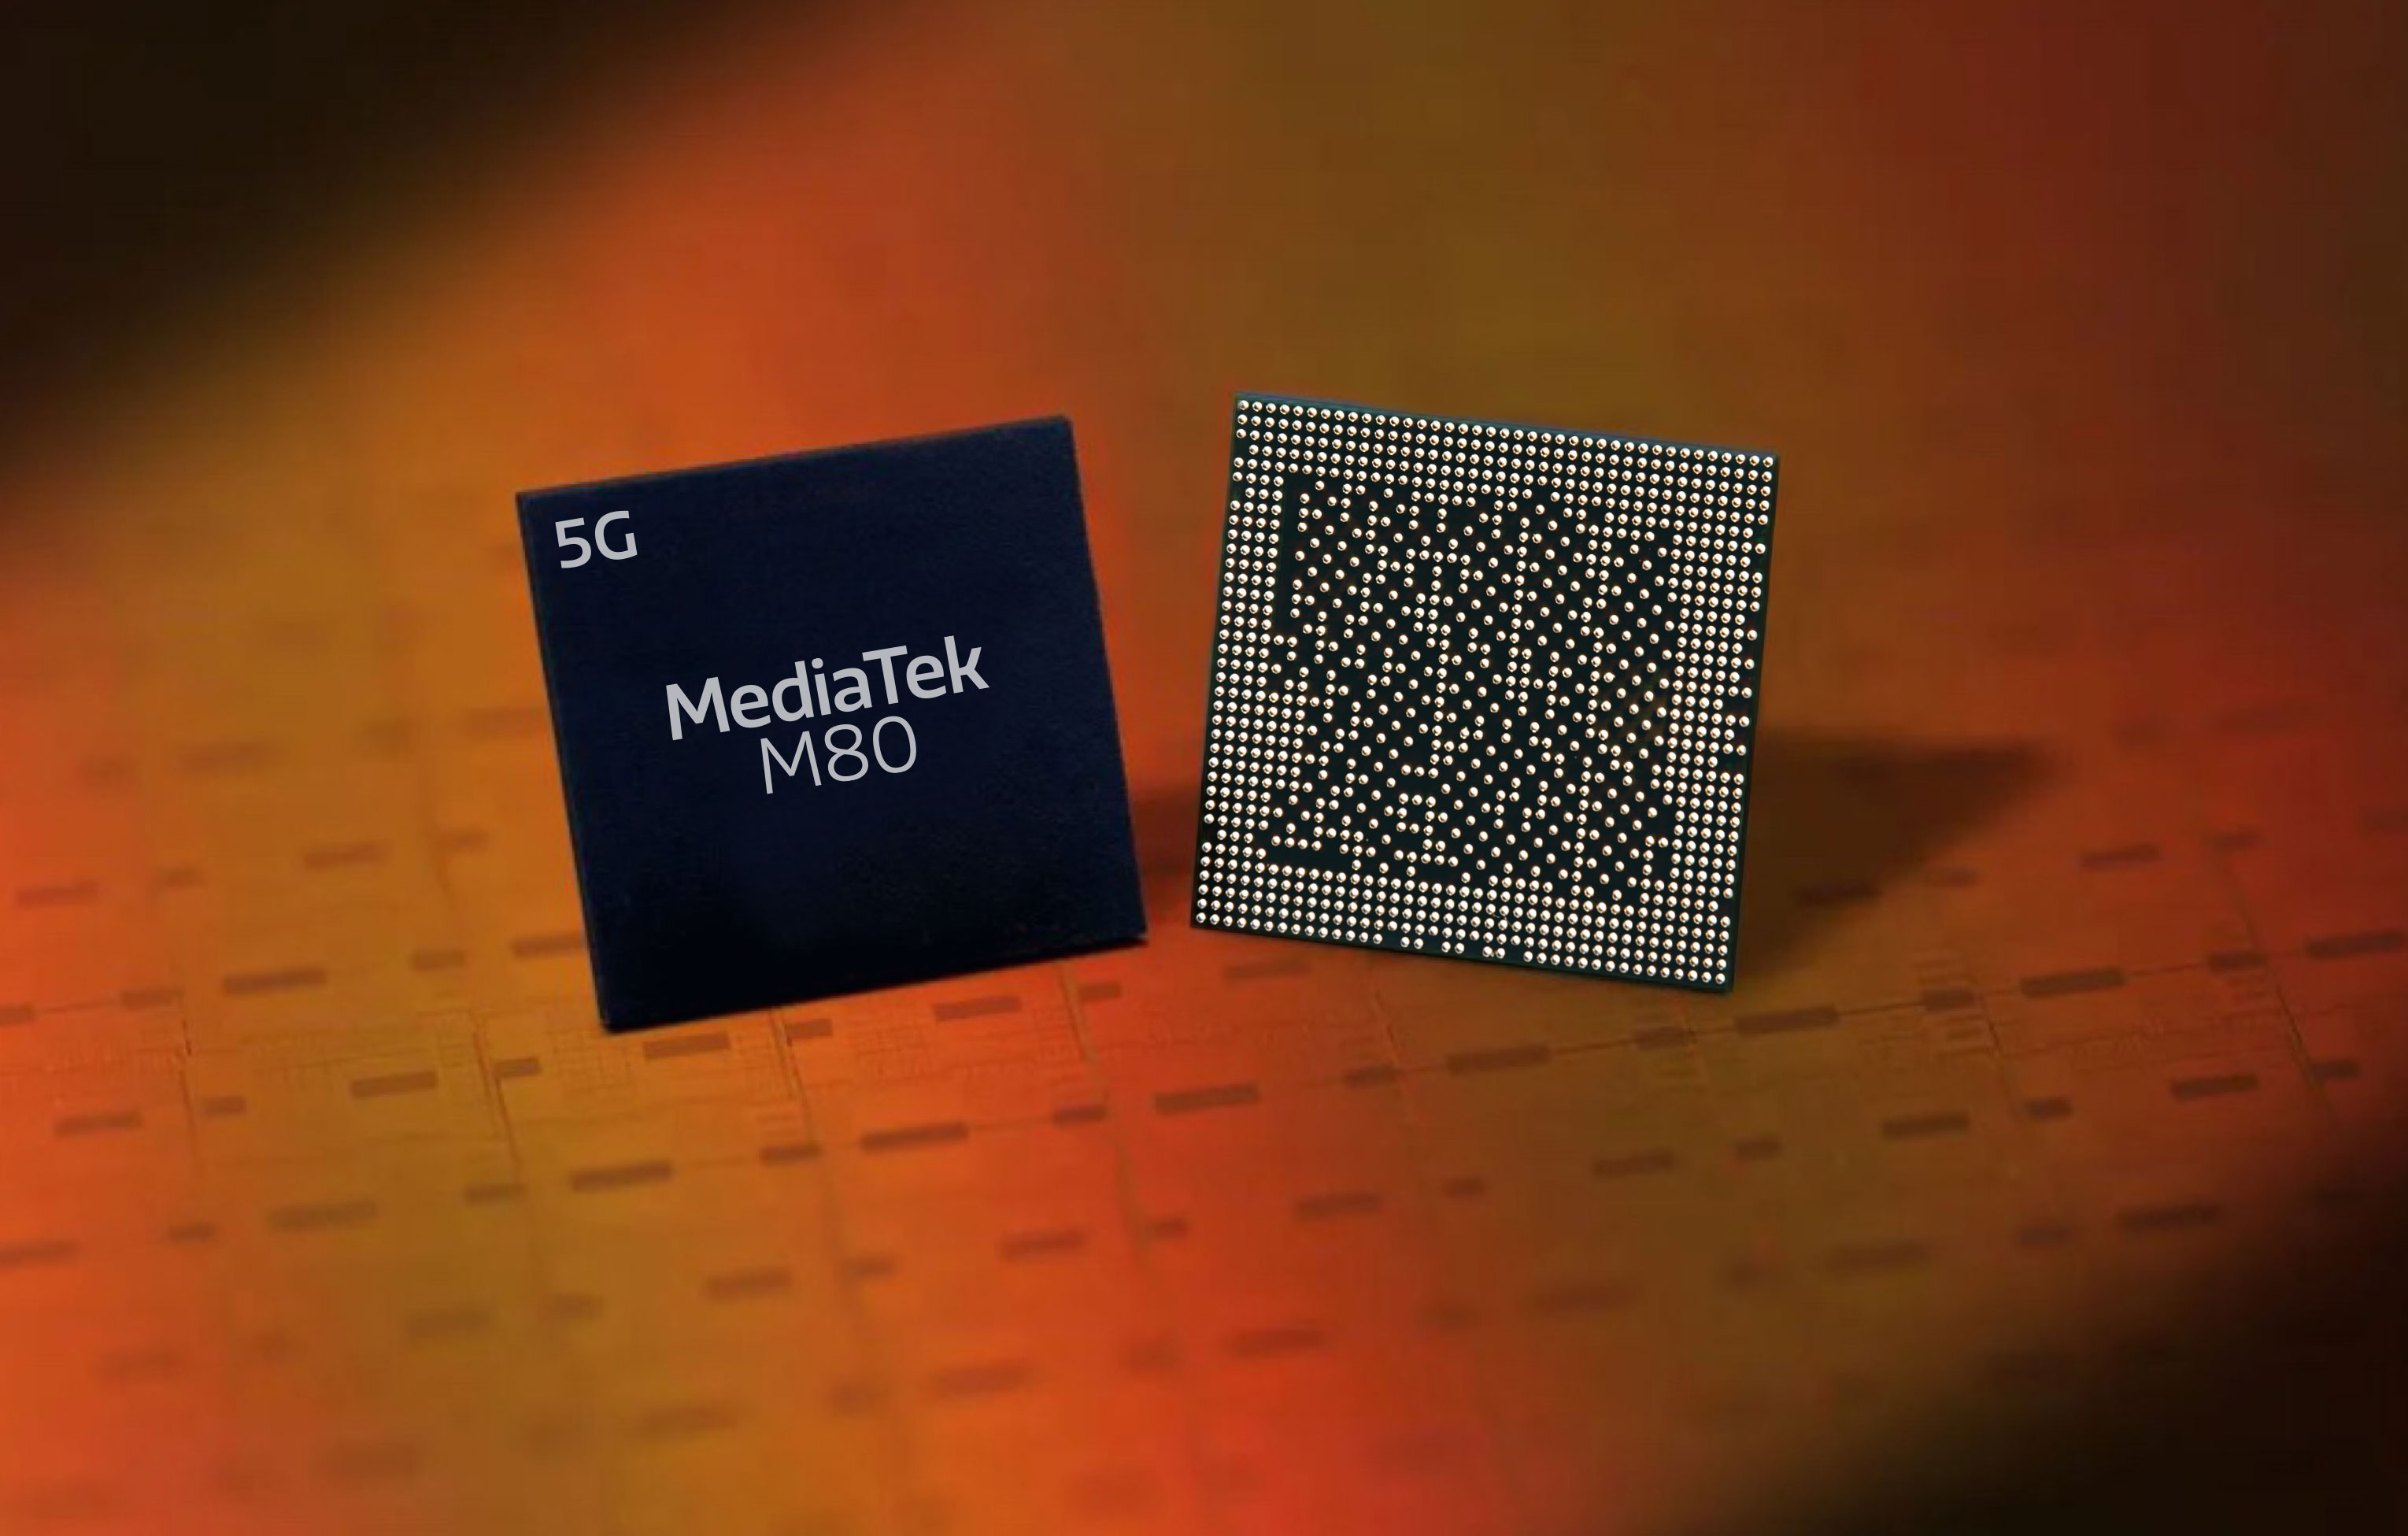 MediaTek Unveils New M80 5G Modem with Support for mmWave and Sub-6 GHz 5G Networks